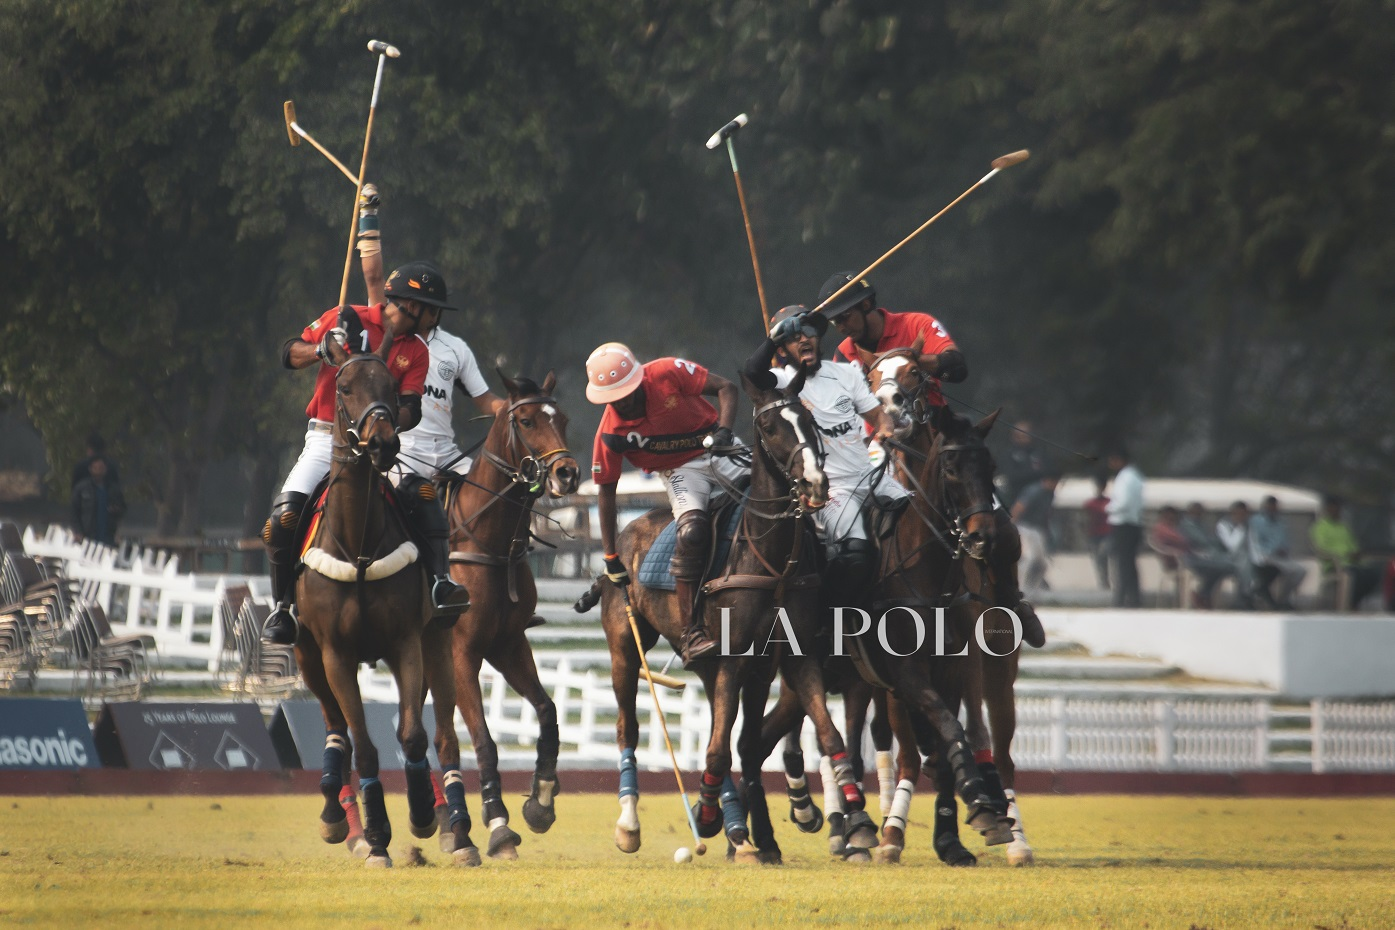 Four Teams Came Out To Battle In The Semi Finals Of The Maharaja Jiwaji Rao Scindia Gold Cup